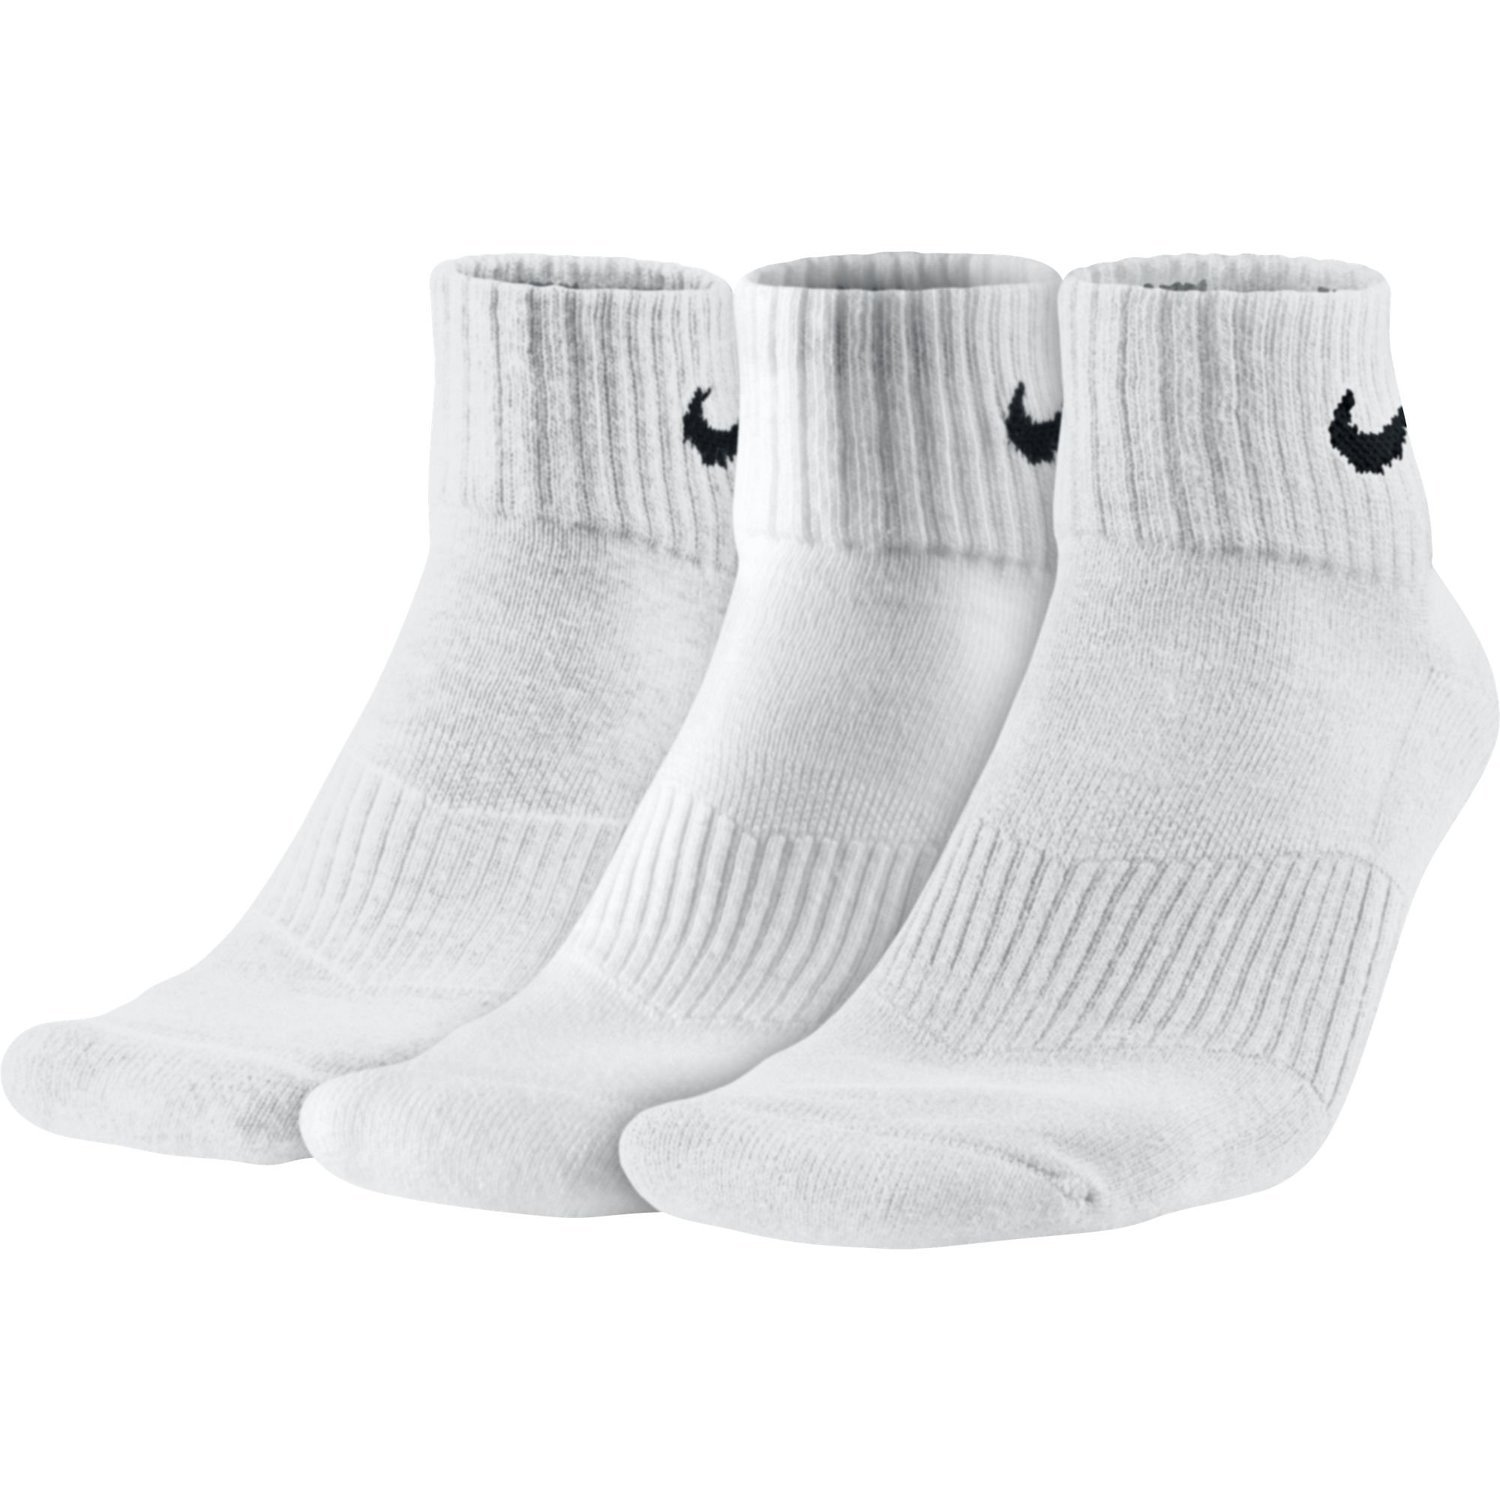 himno Nacional Privilegio Aumentar  Buy Nike SX4703-101 3PPK Cushion Quarter Socks, XXX-Large Online ...